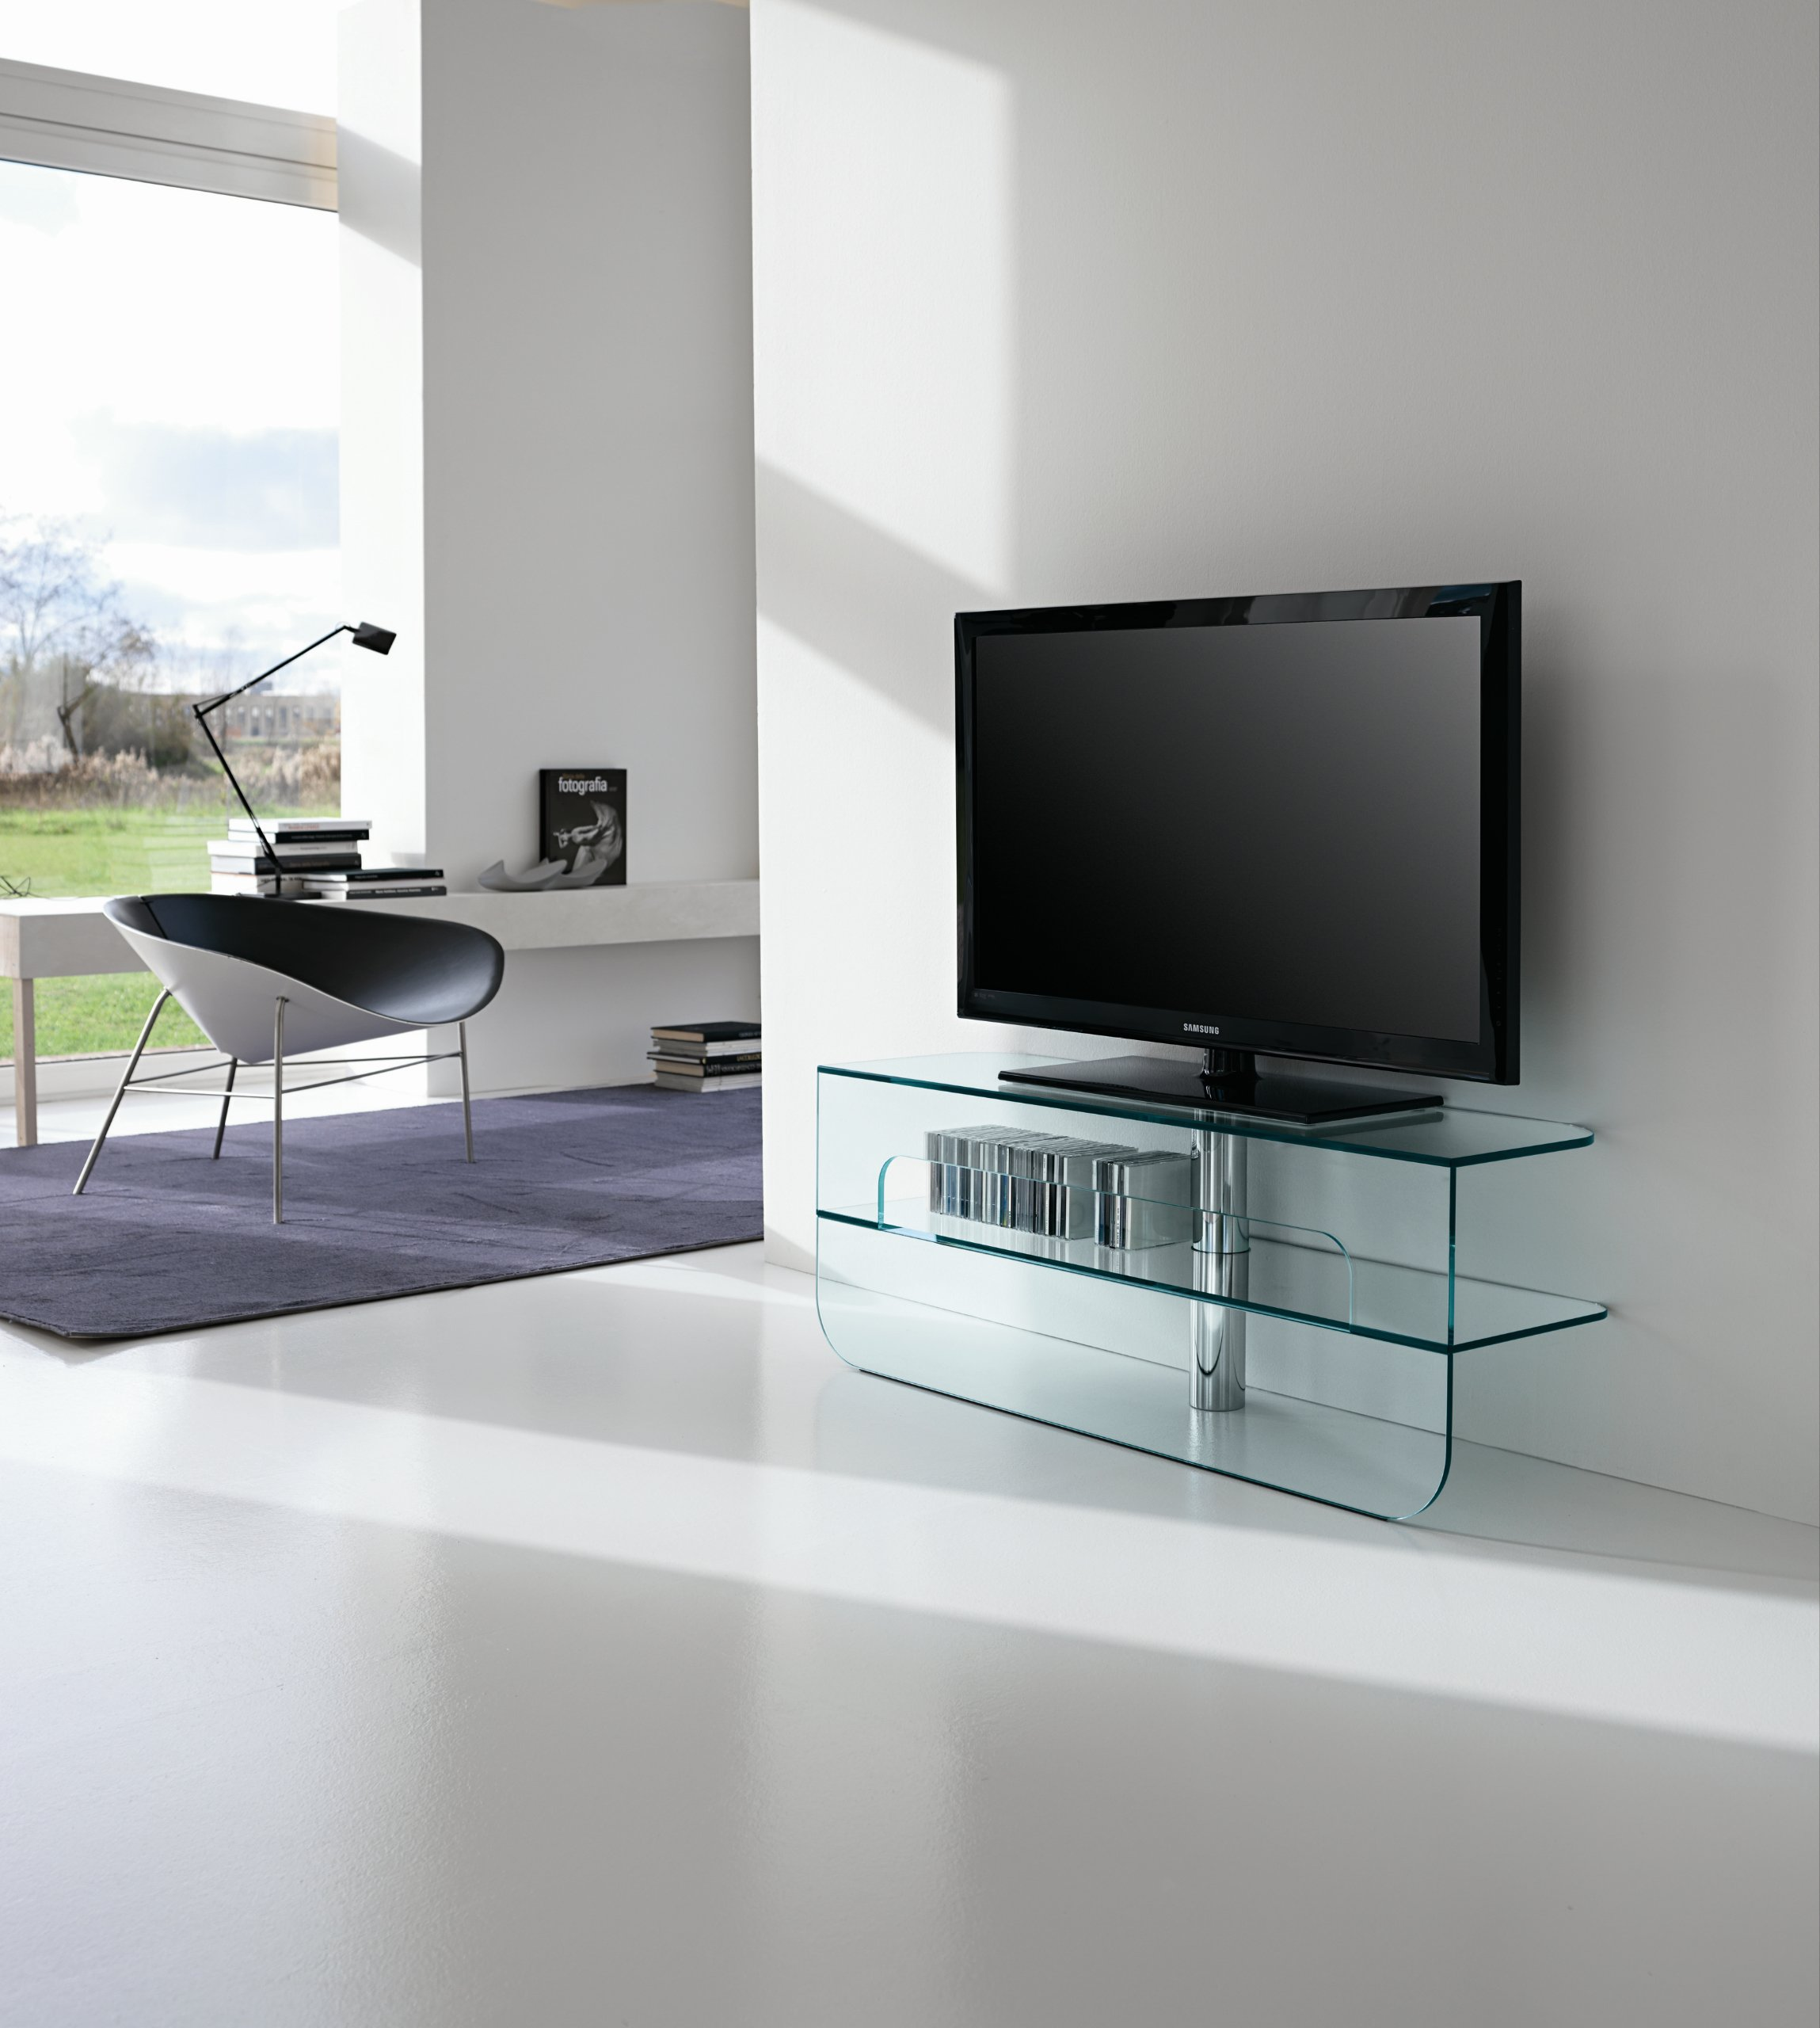 Meuble Tv En Verre Design Meuble Tele Coin Maisonjoffrois # Meuble Tv Central